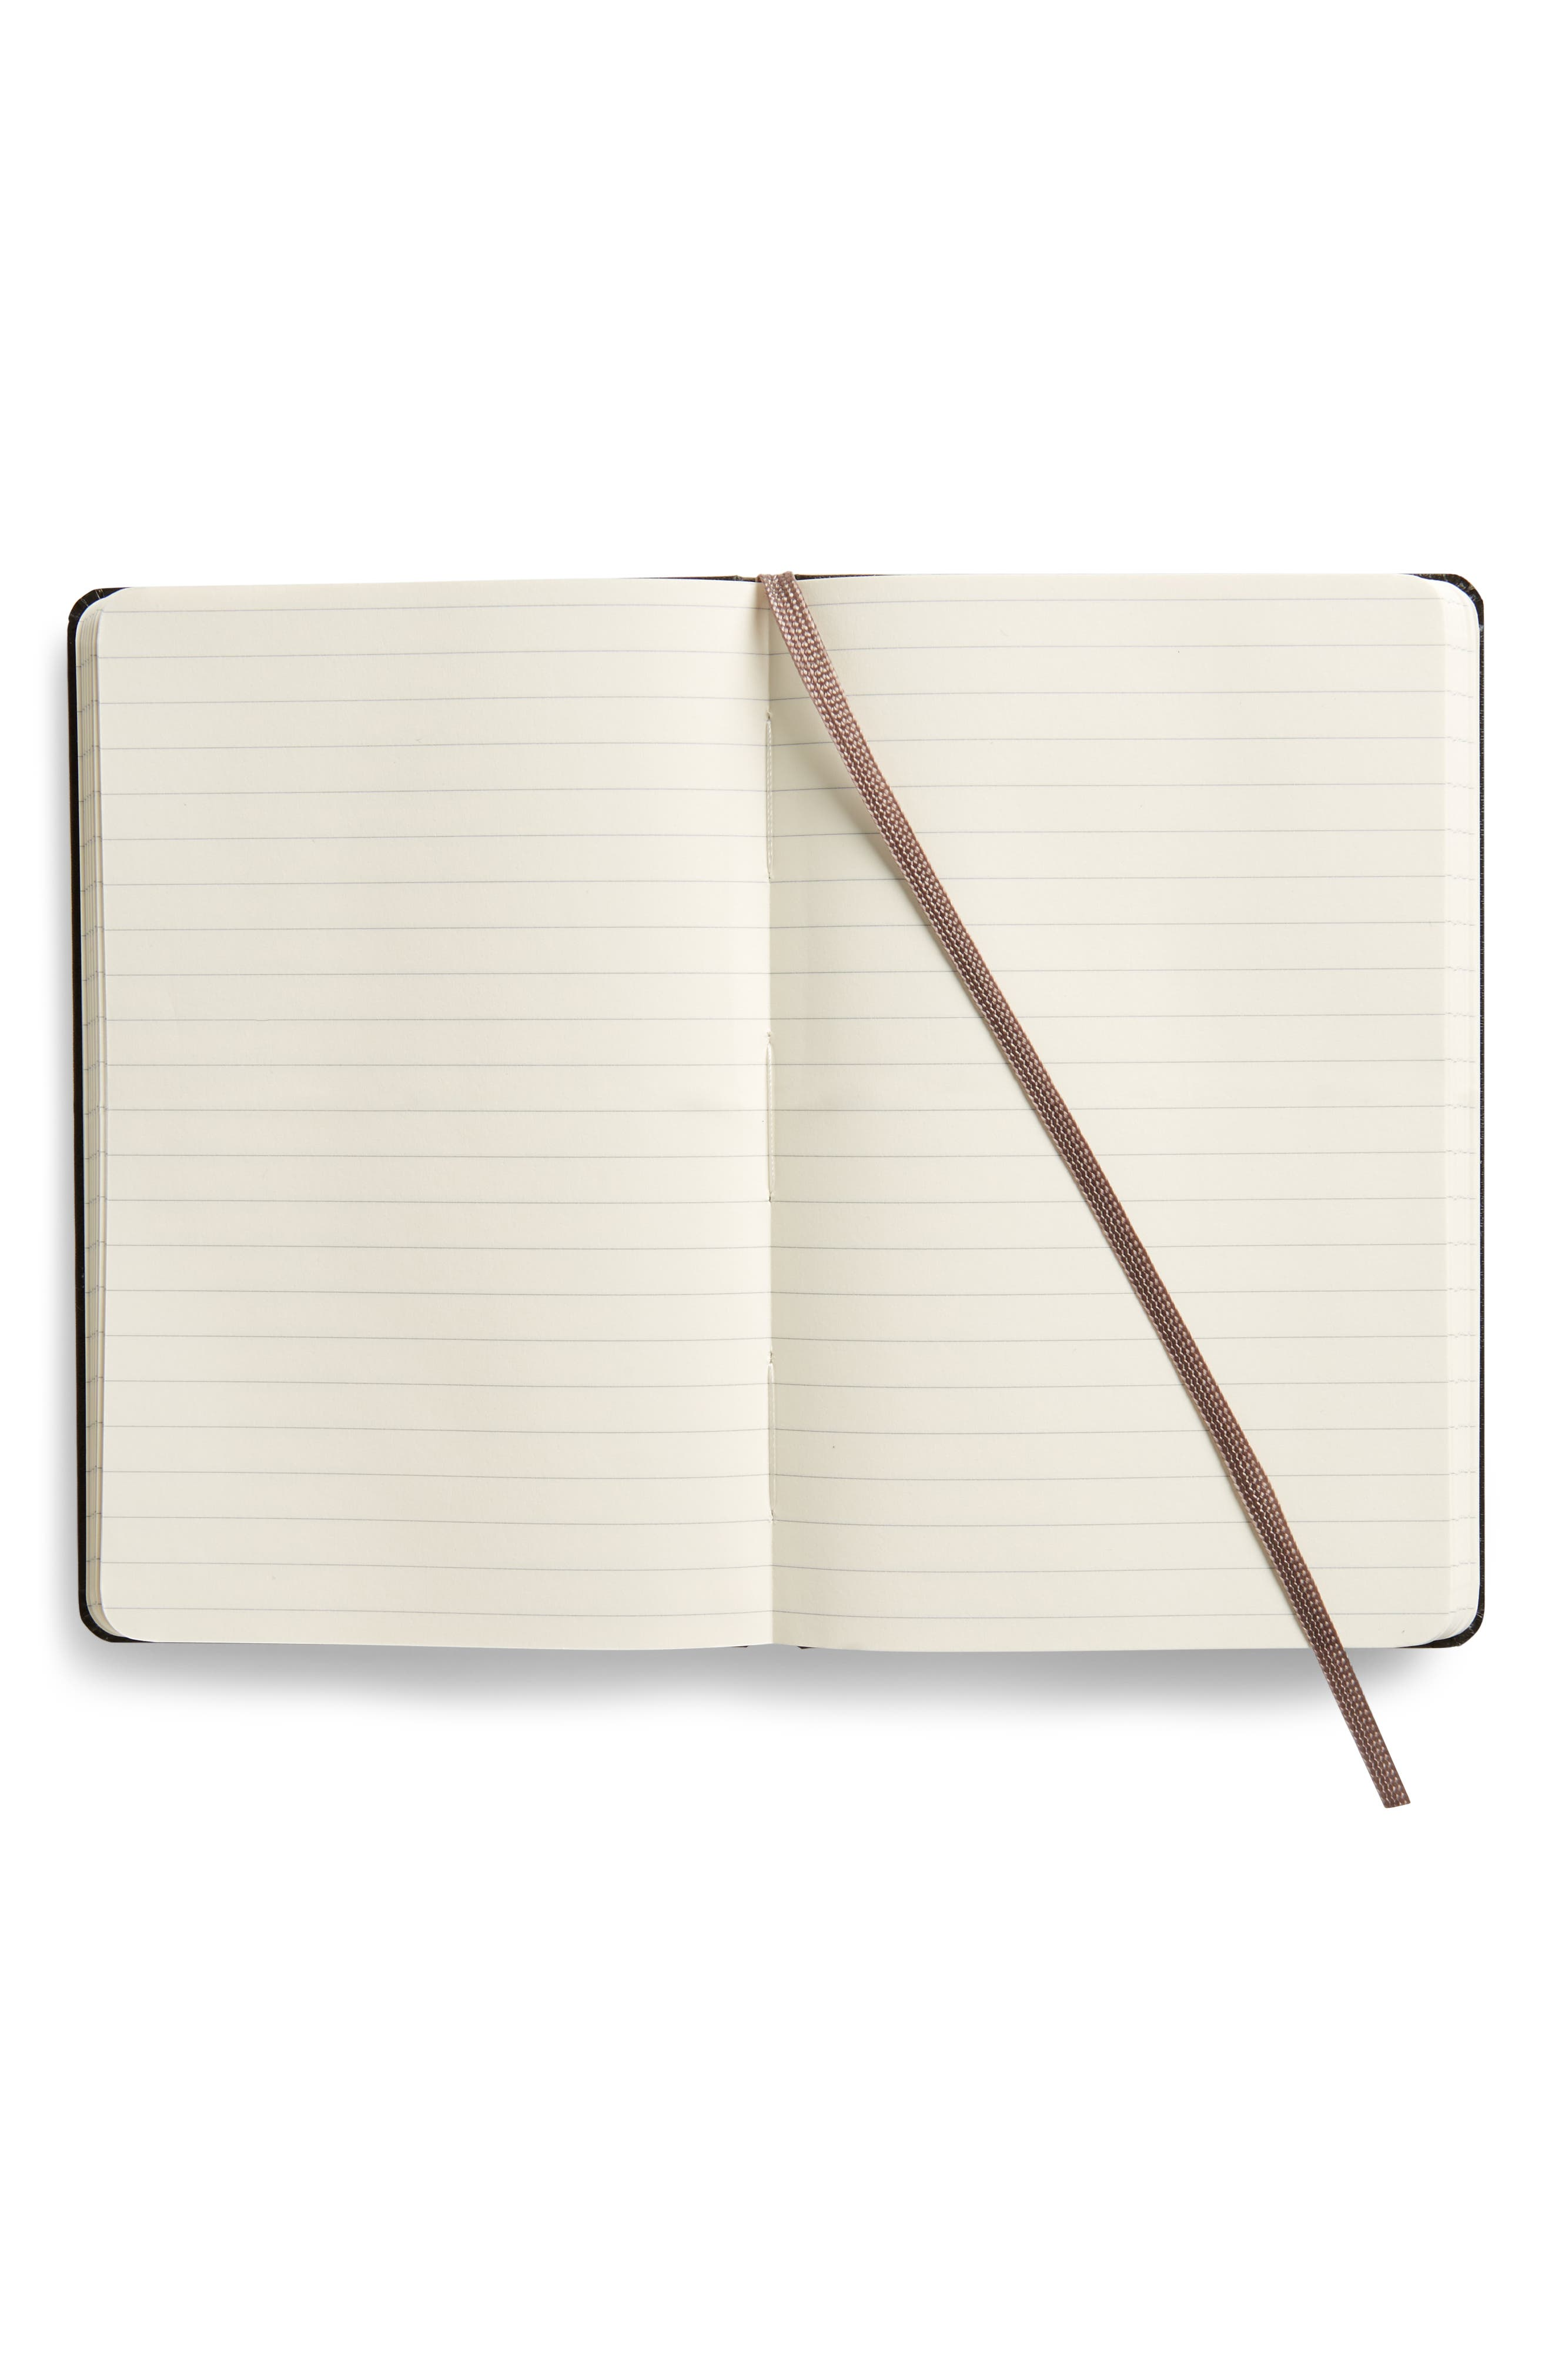 Classic Ruled Pocket Hardcover Notebook,                             Alternate thumbnail 2, color,                             001